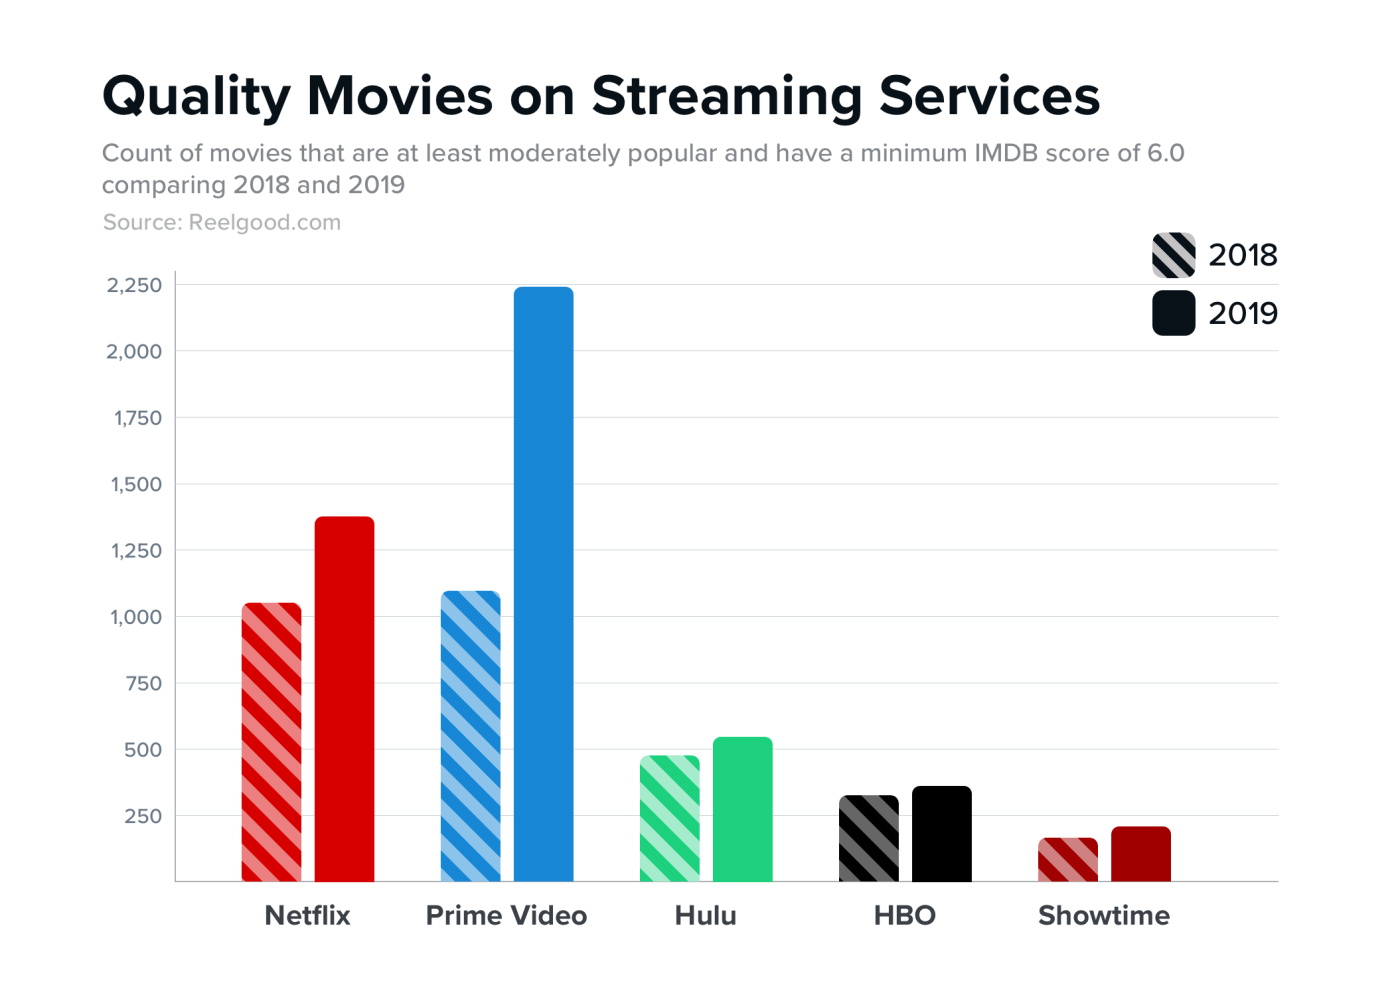 Quality Movies on Streaming Services 2018 - 2019